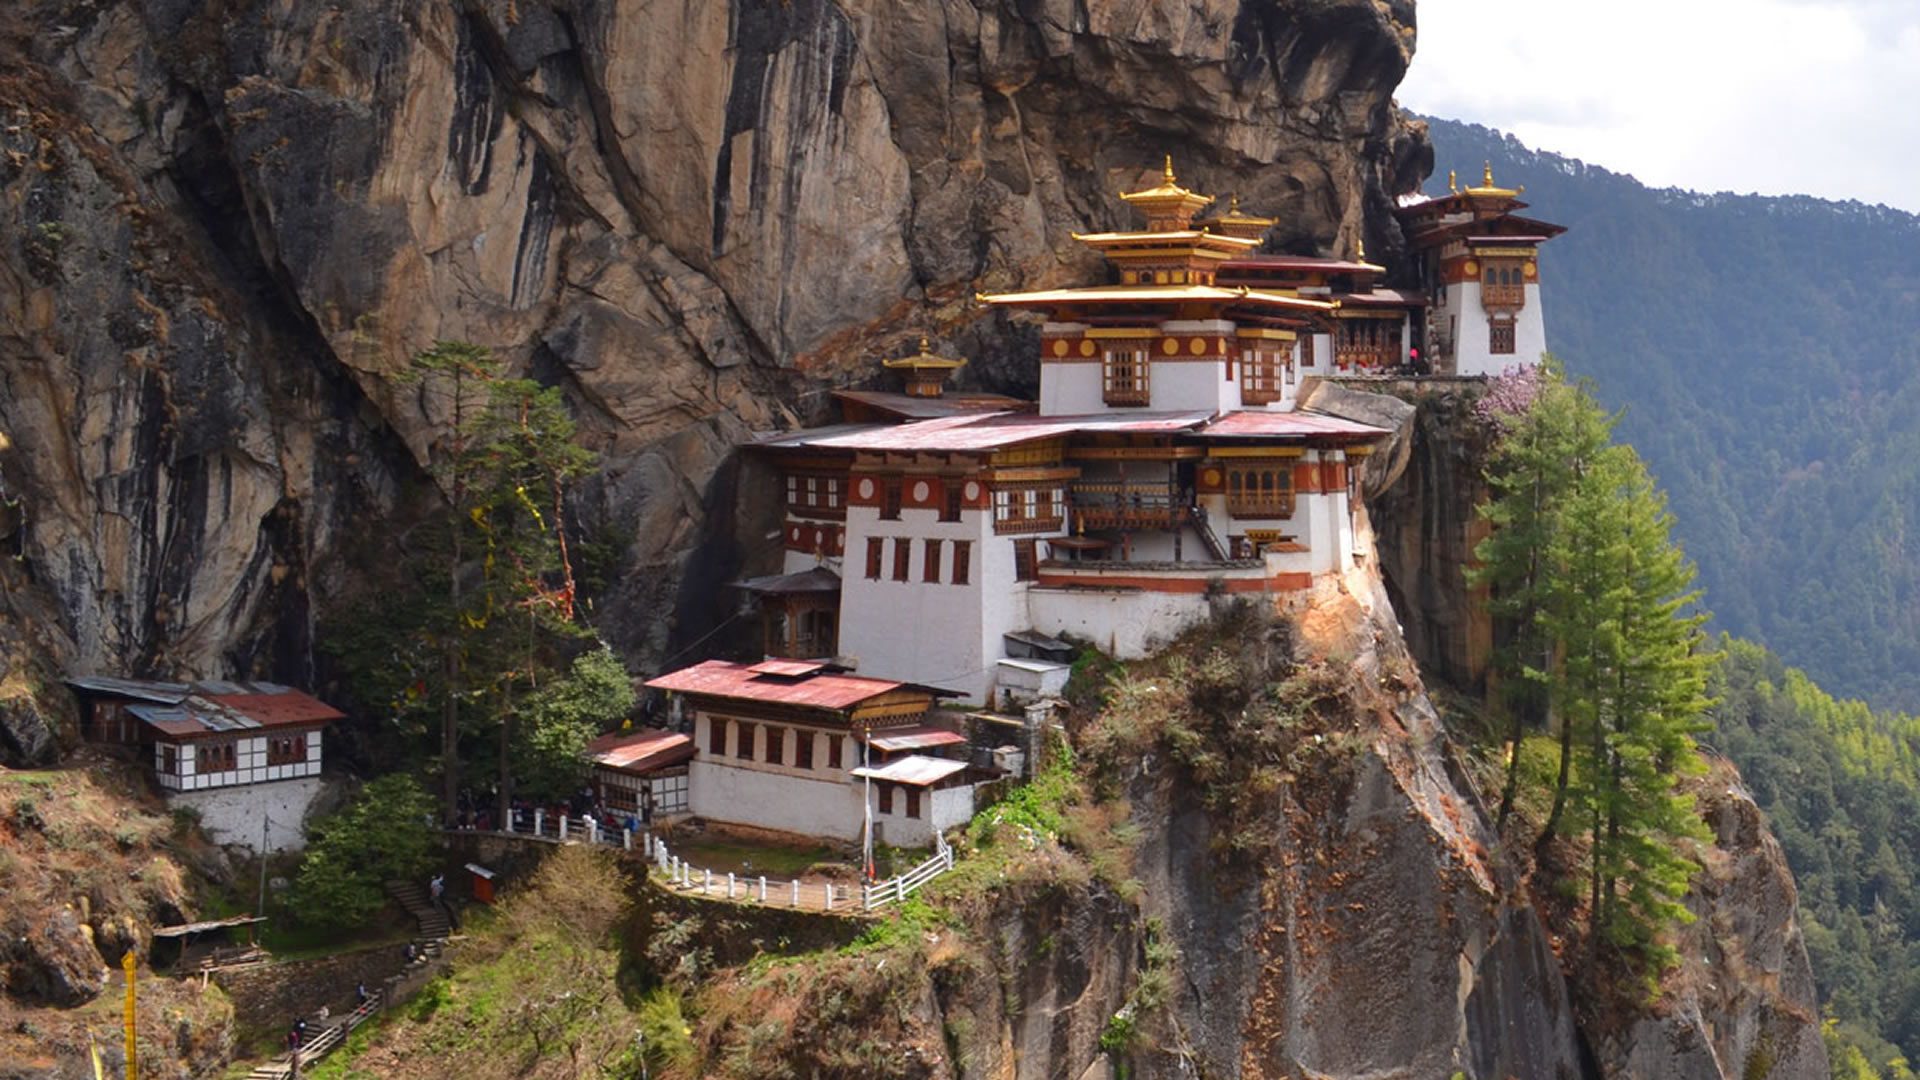 Gross National Happiness in the Himalayas